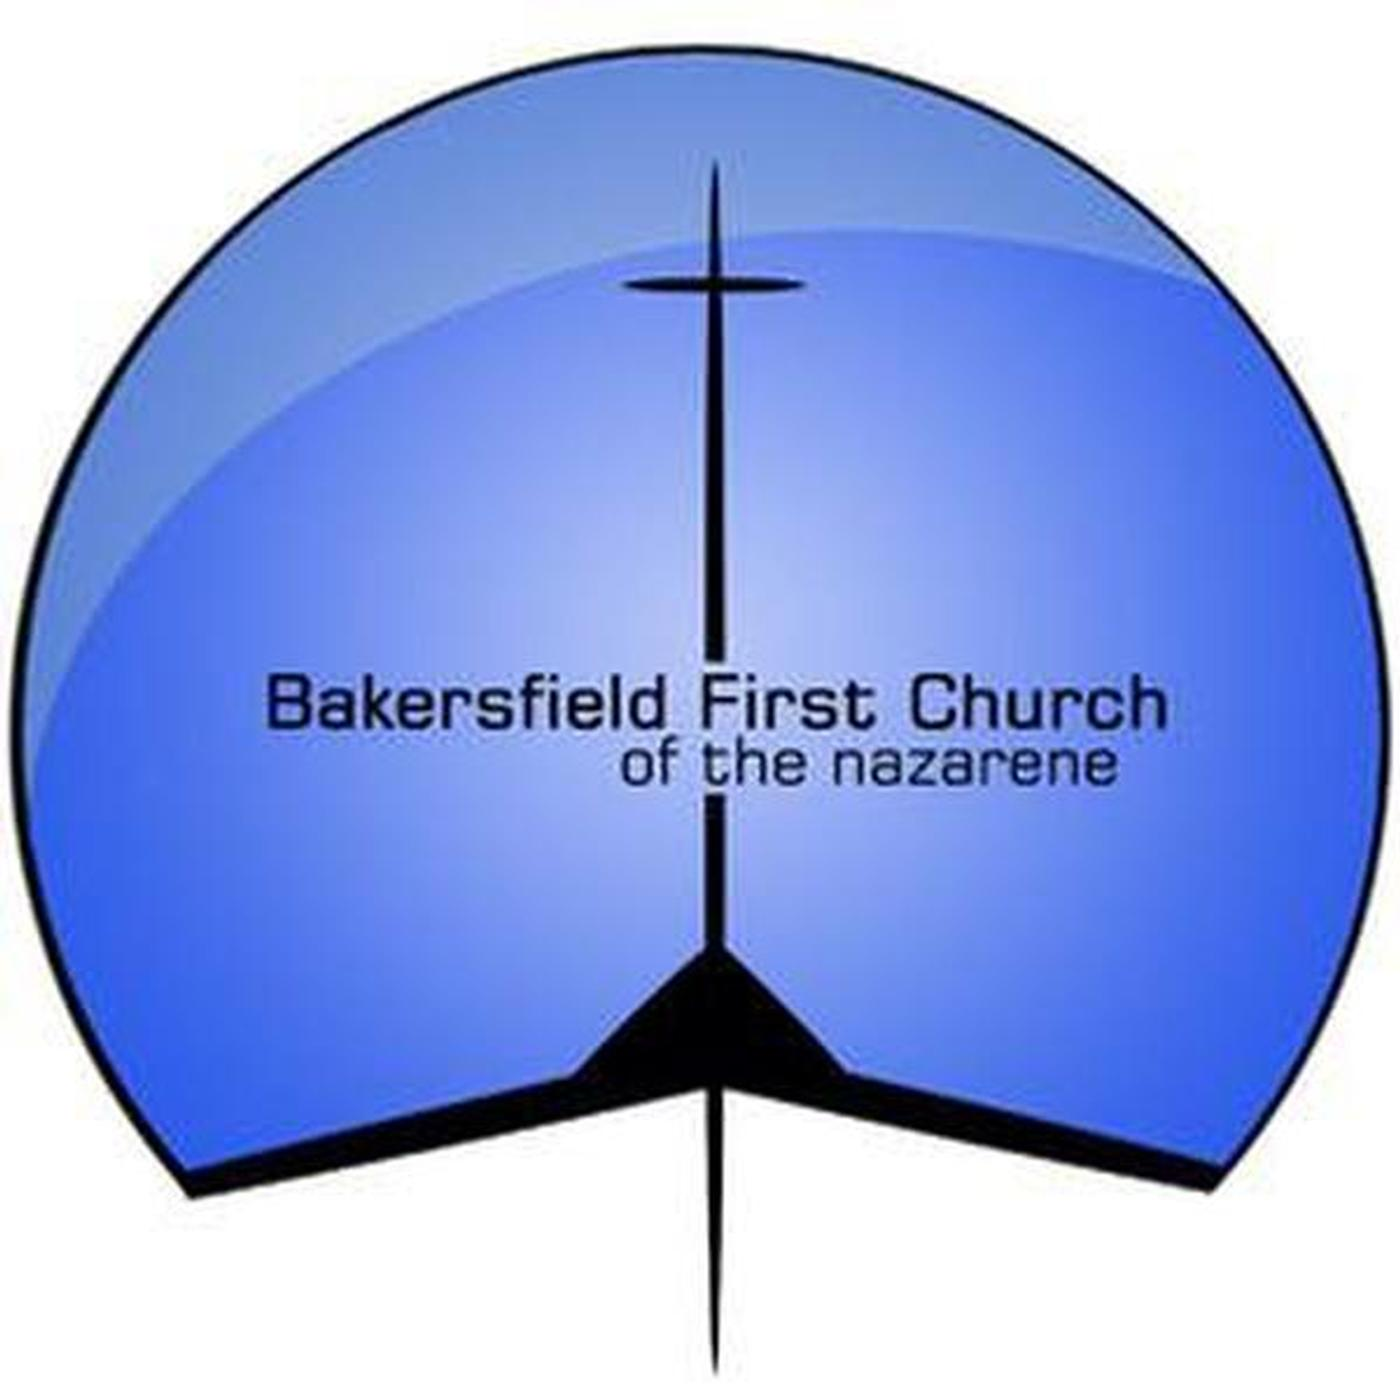 Bakersfield First Church of the Nazarene